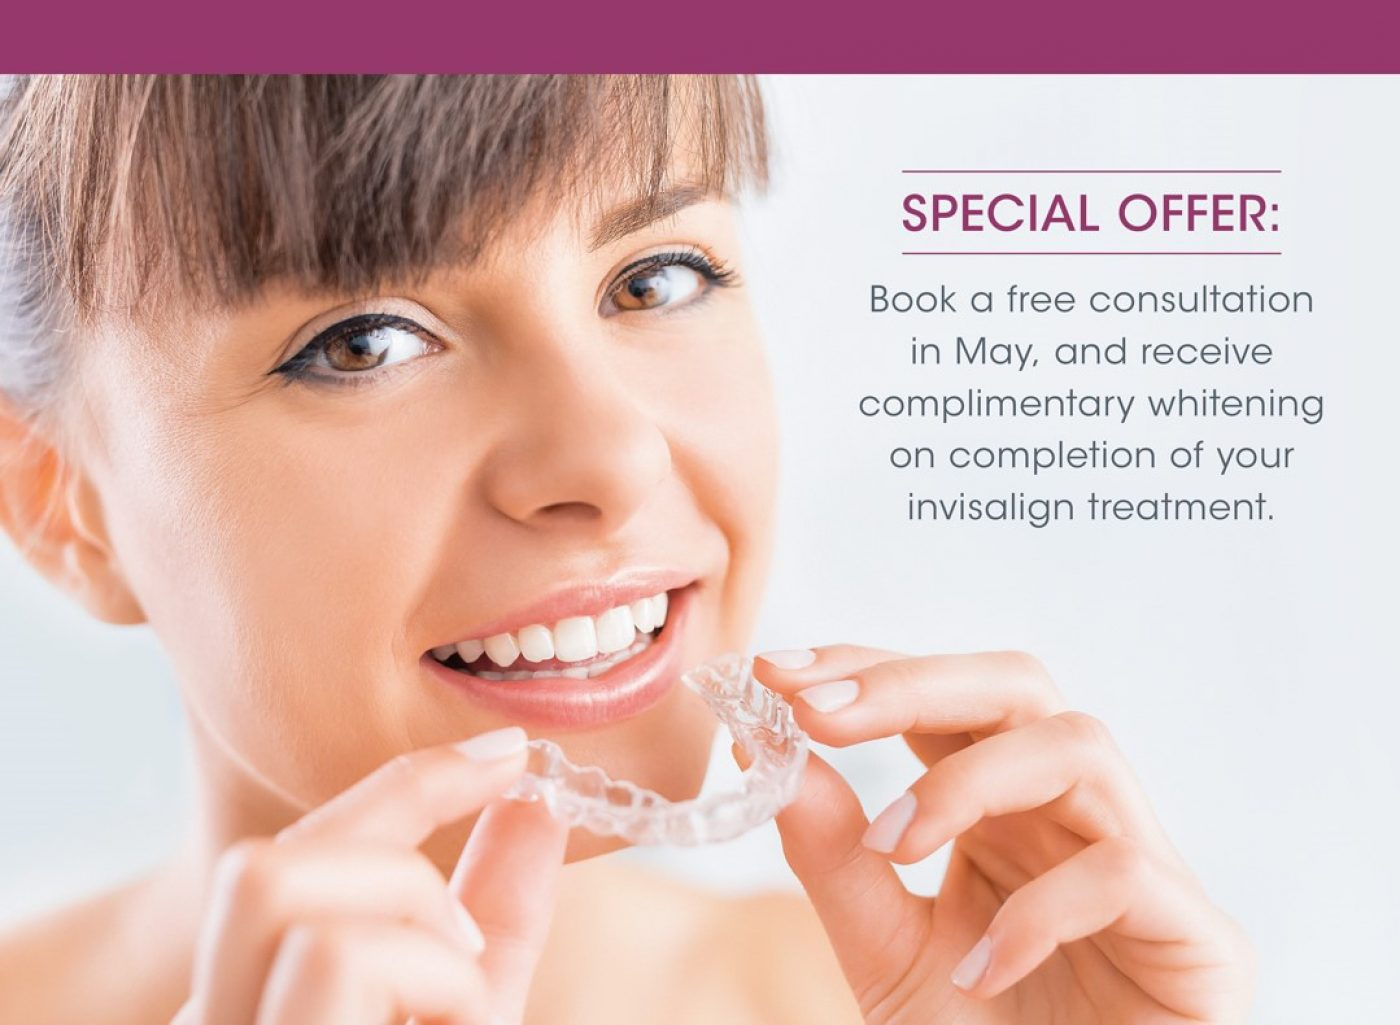 Pdc0037 Hawkins Invisalign Social Ads 0418 3